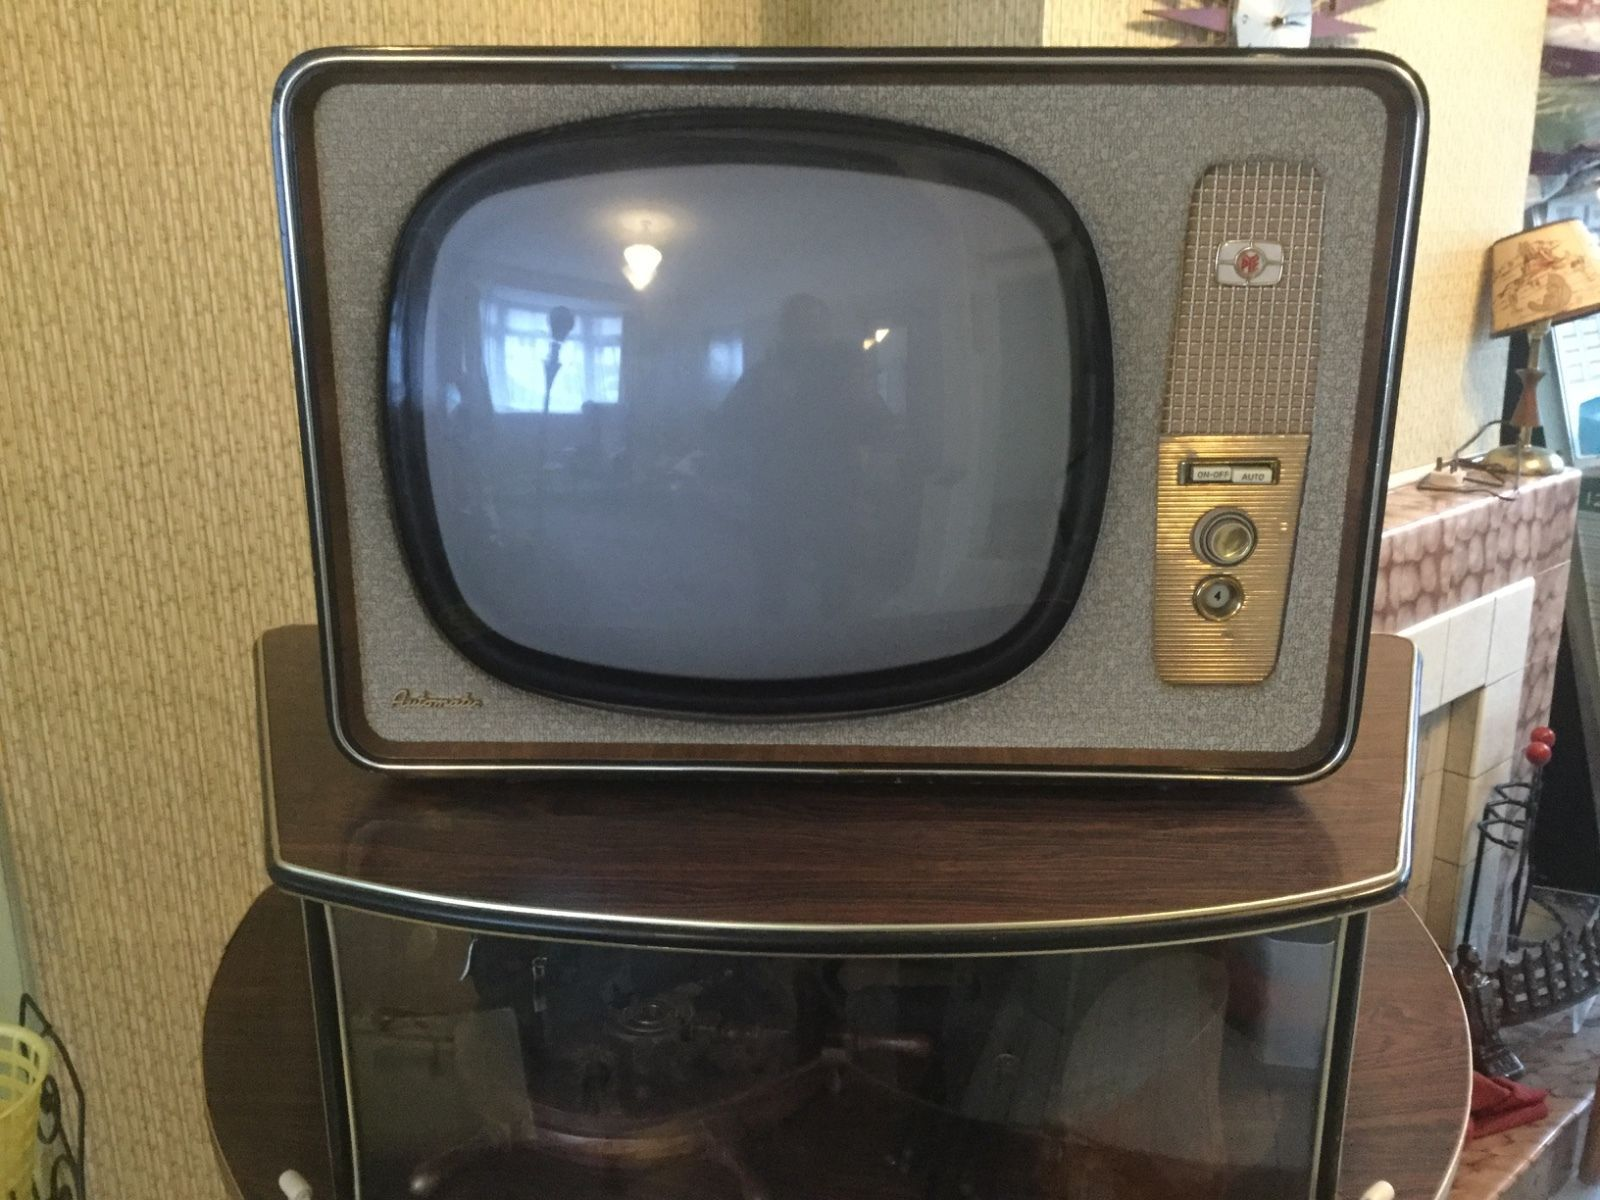 Pye 1950s Black And White Television Set Television Sets